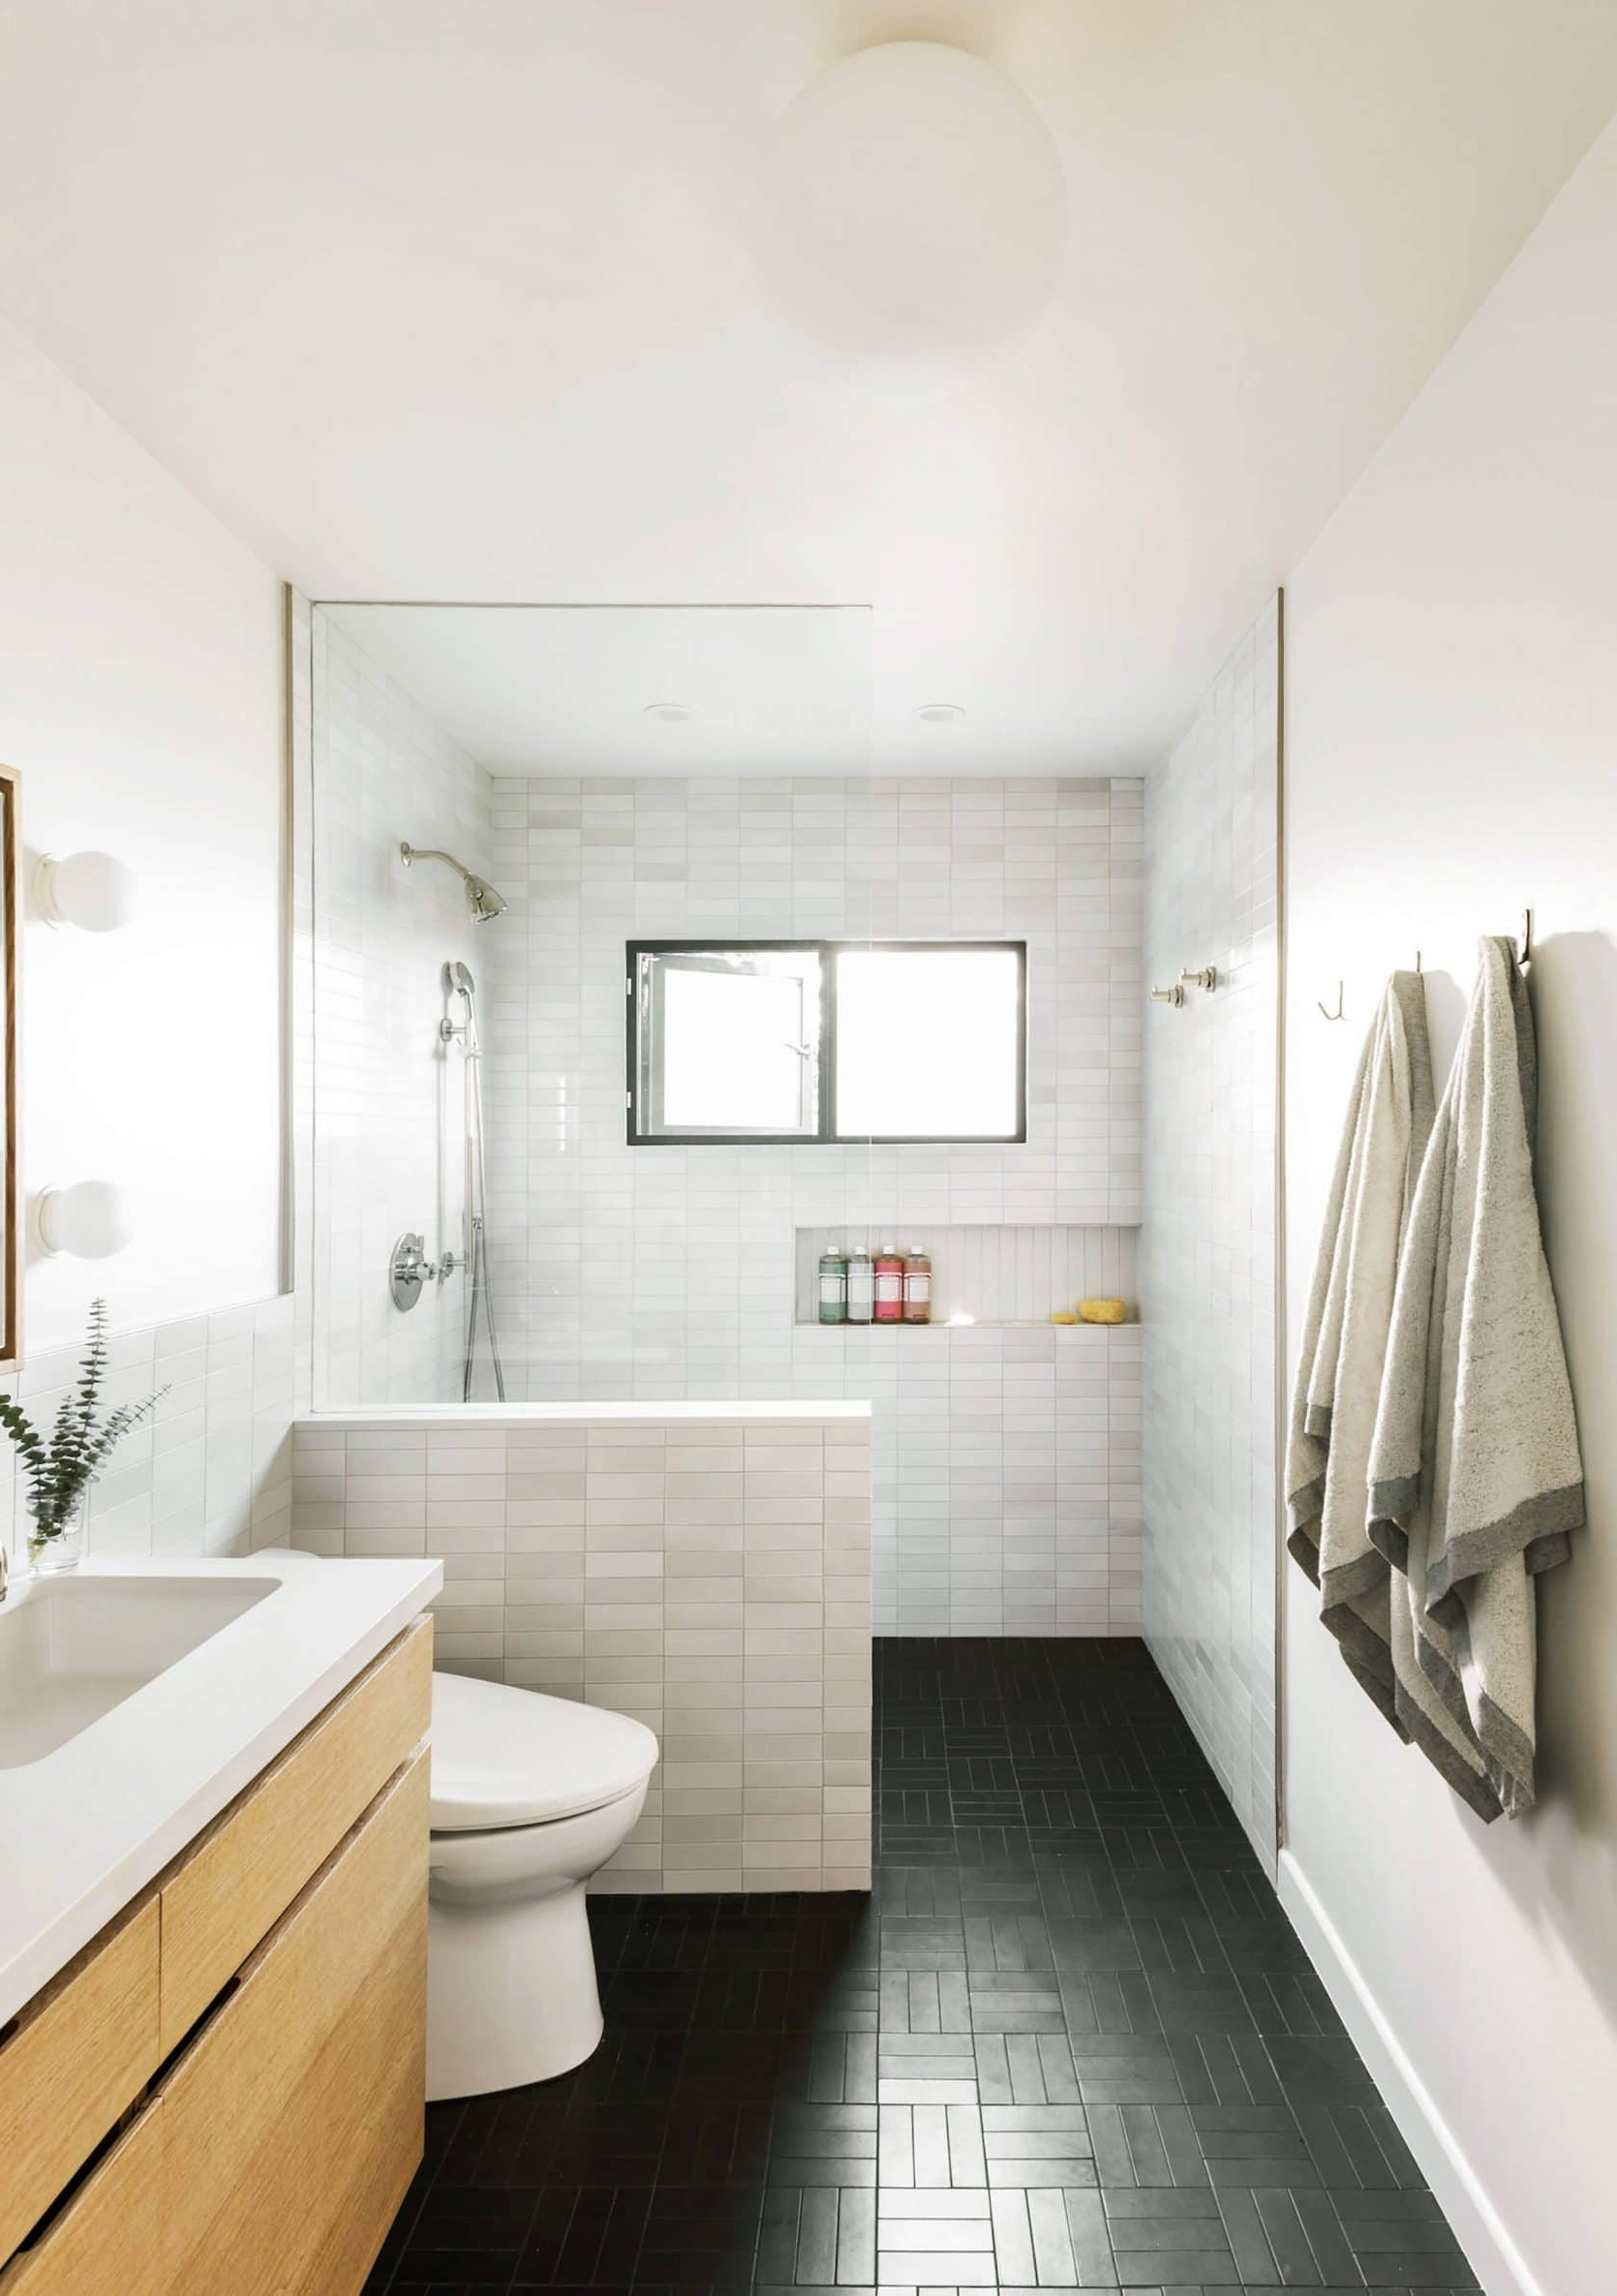 10 Of The Most Exciting Bathroom Design Trends For 2019 Ensuite Bathroom 2019